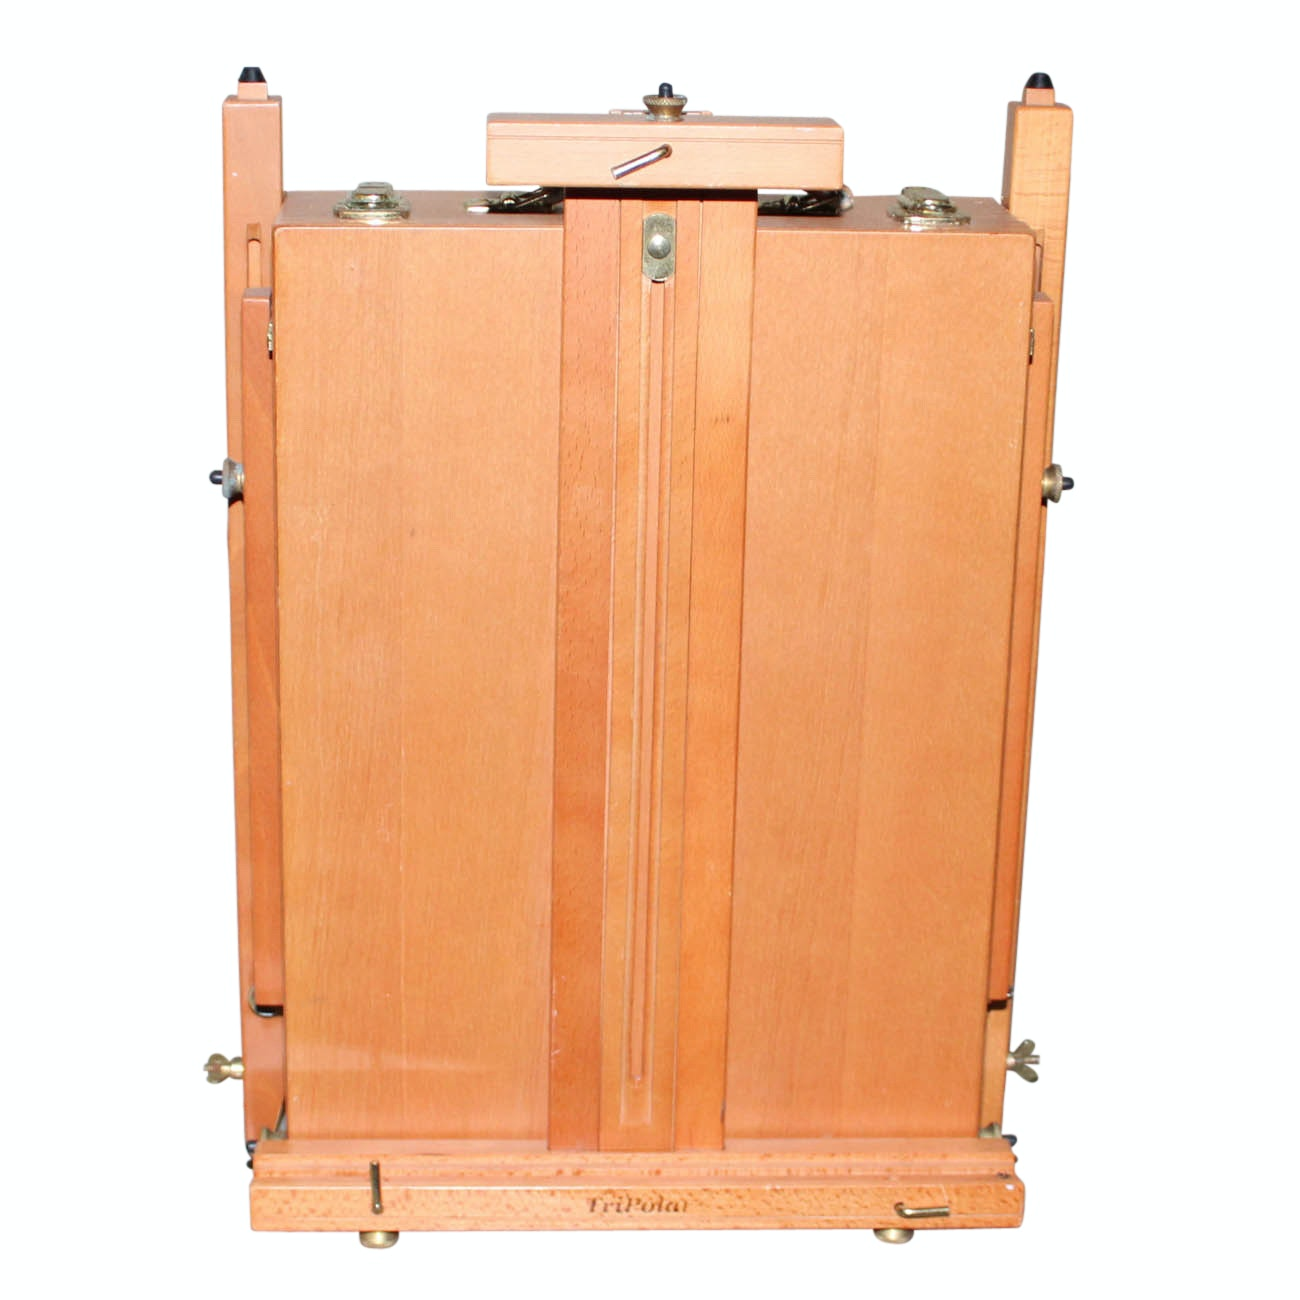 TriPolar French Portable Wooden Easel